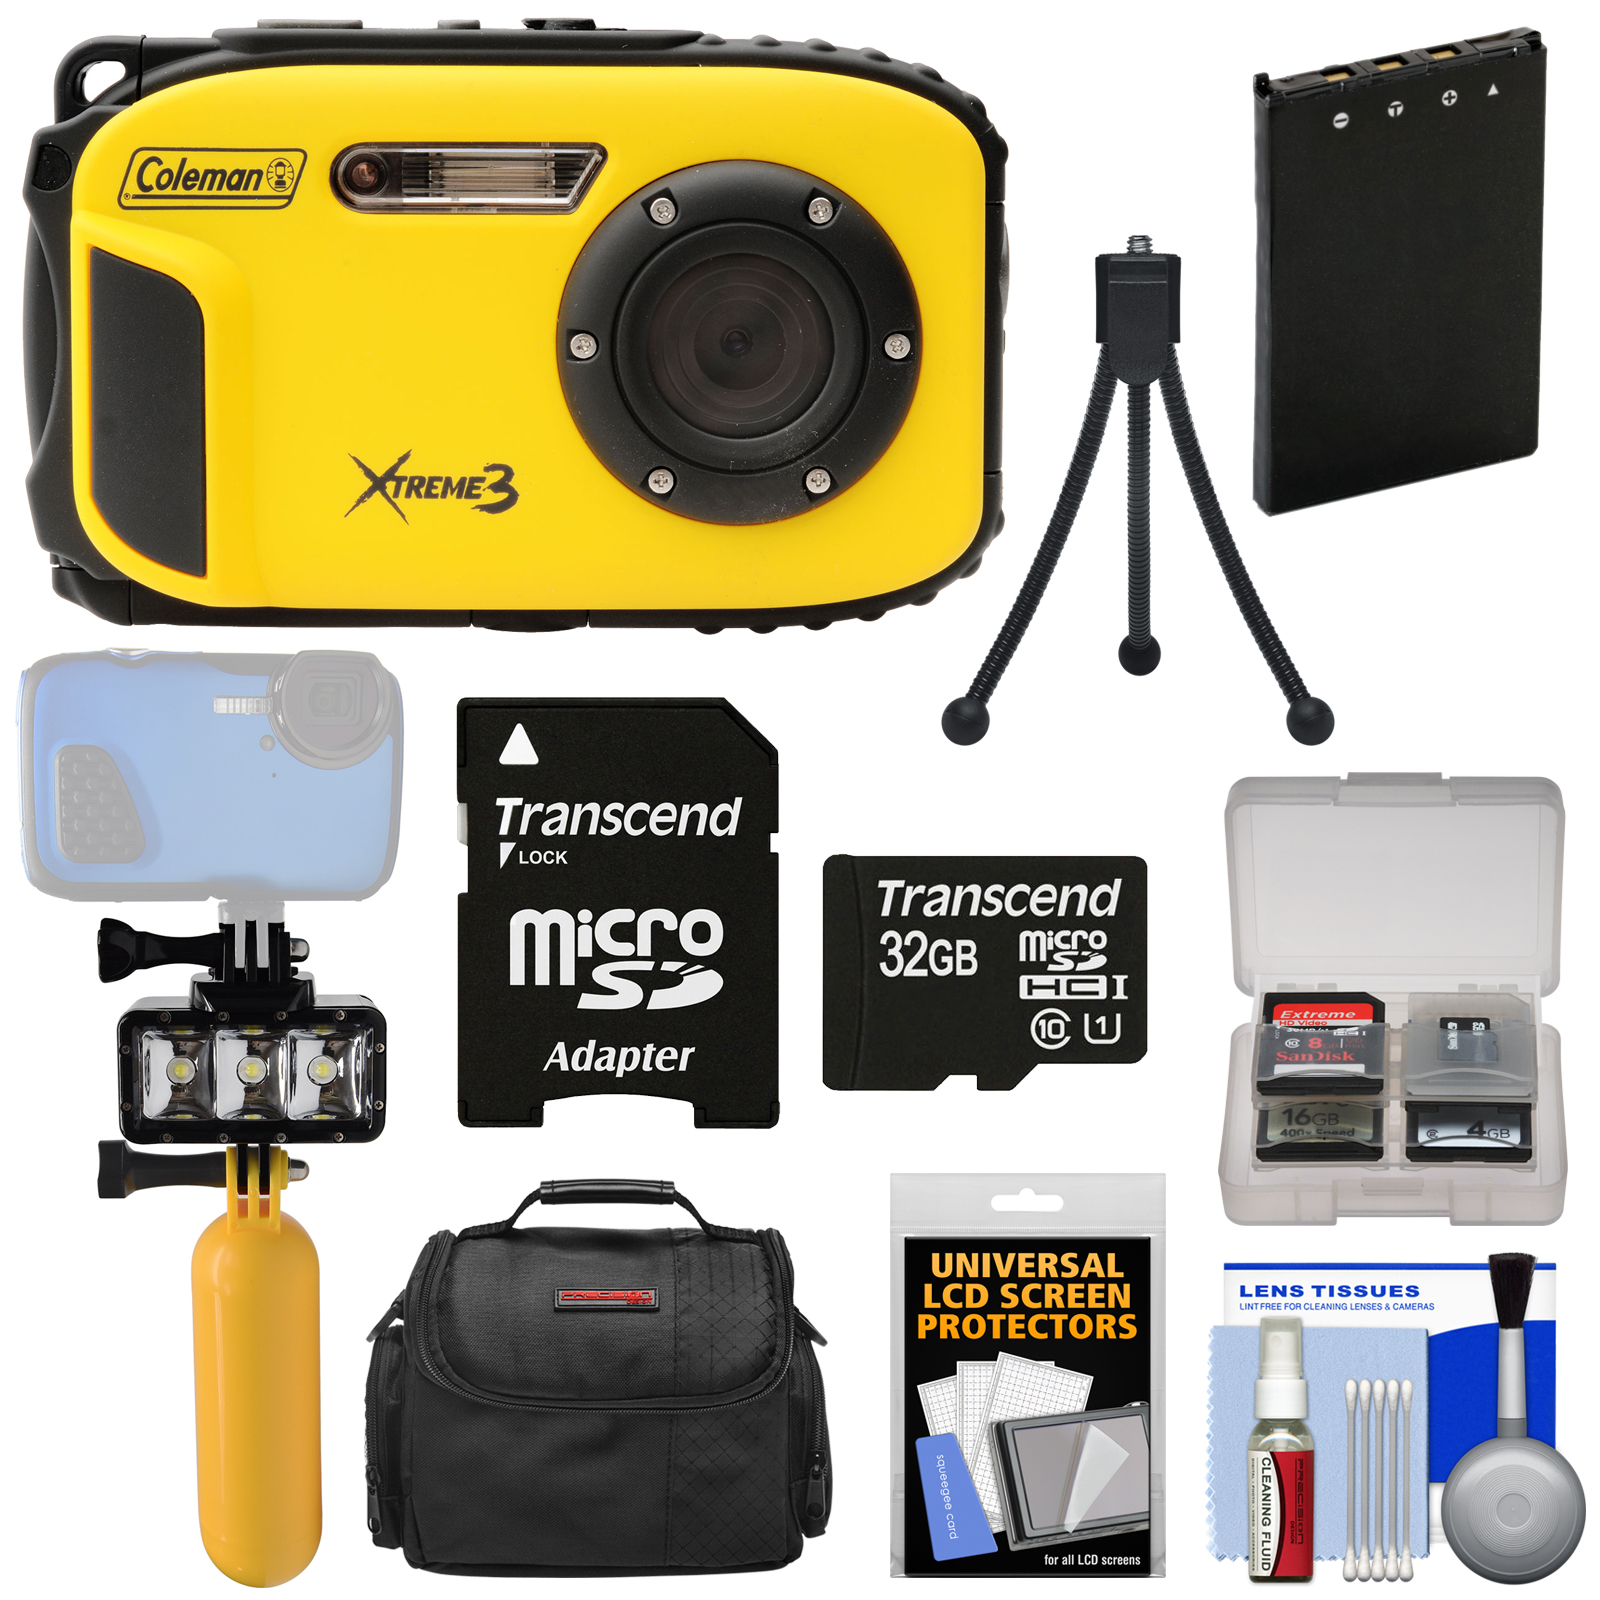 Coleman Xtreme3 C9WP Shock & Waterproof 1080p HD Digital Camera (Yellow) with 32GB Card + Battery + Diving LED Video... by Coleman